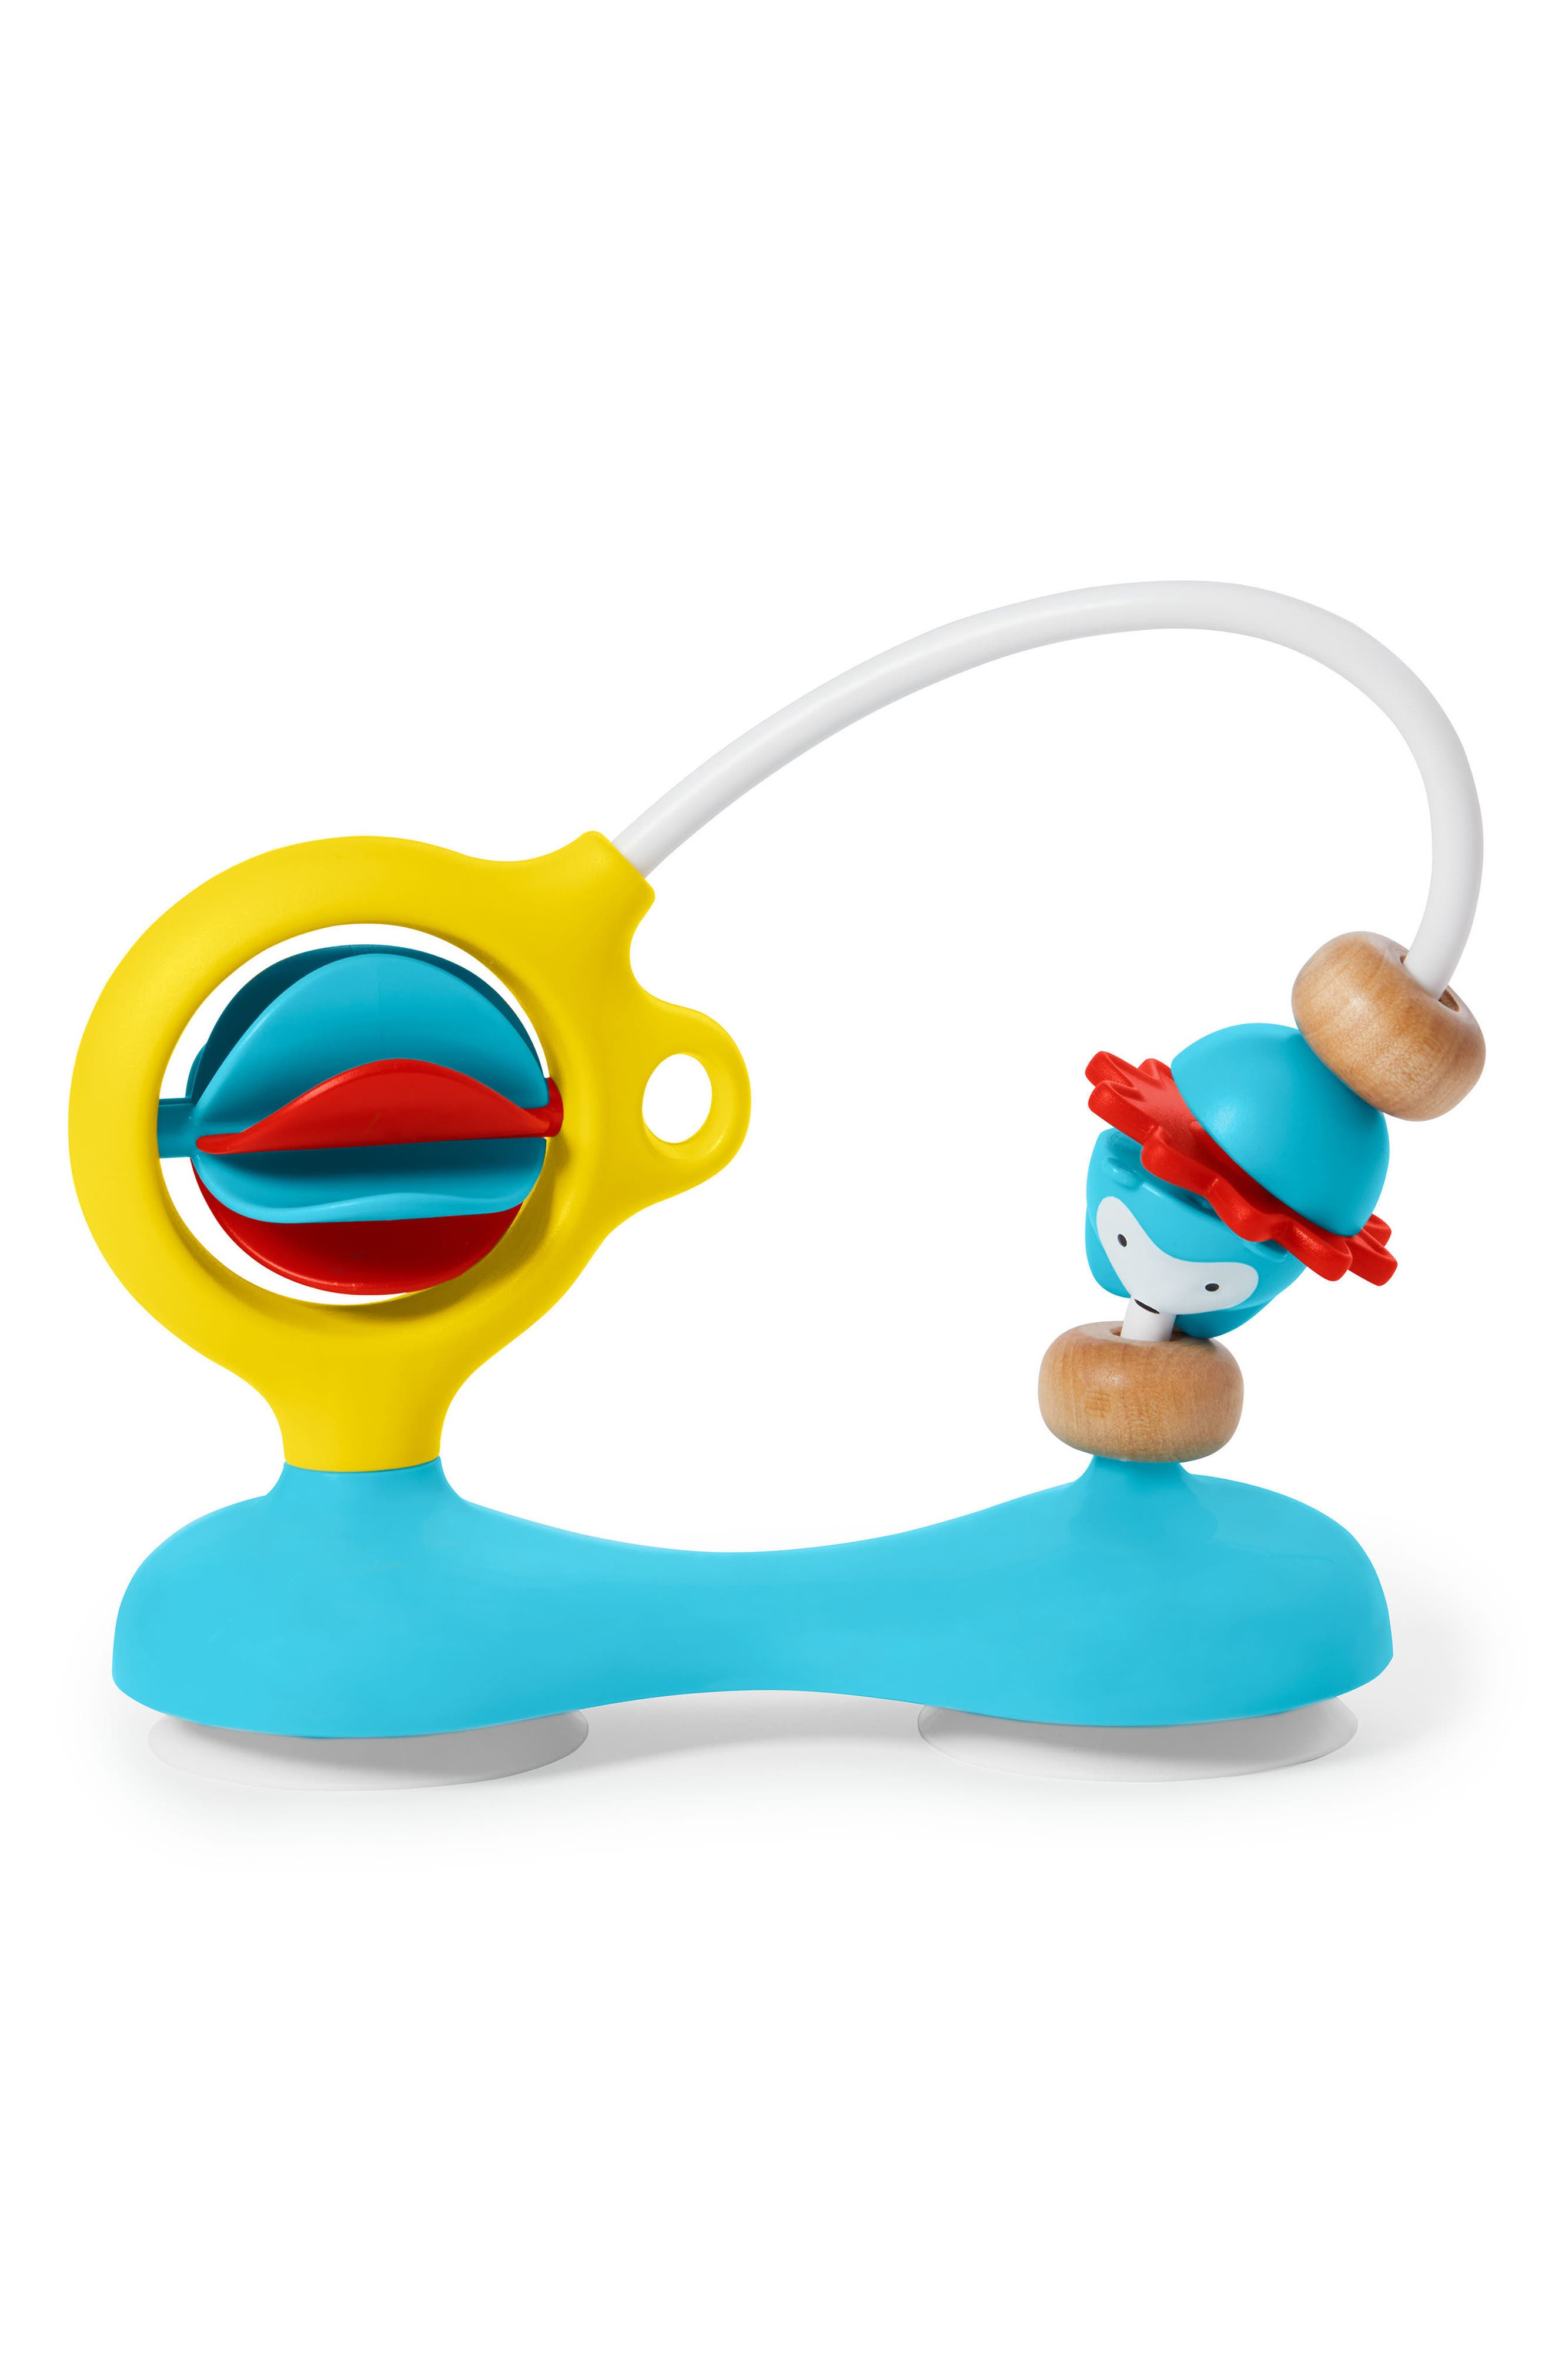 Explore N More Bead Mover Highchair Toy,                             Main thumbnail 1, color,                             Bead Mover